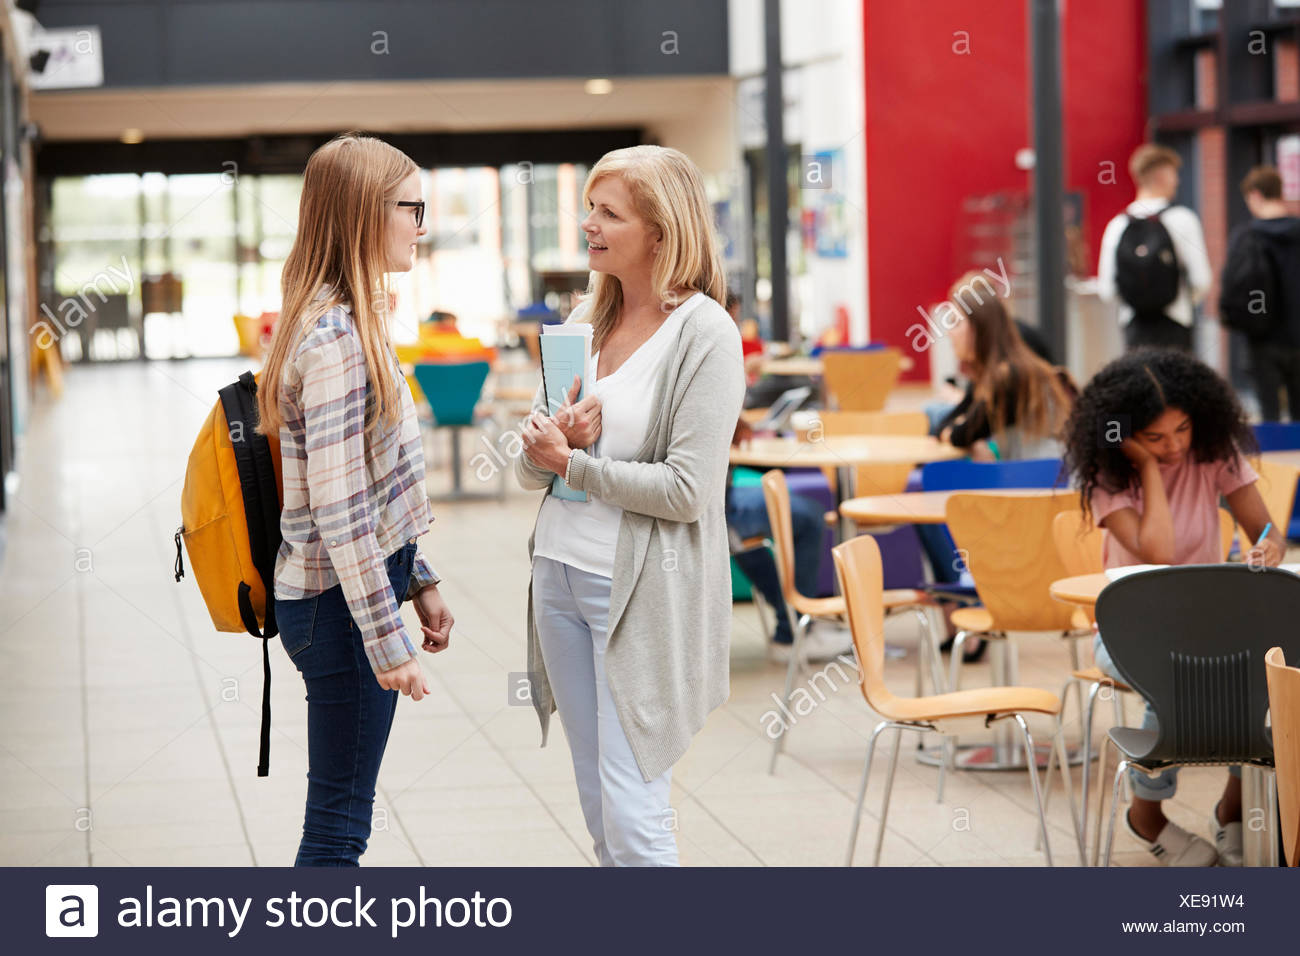 Teacher Talks To Student In Communal Area Of College Campus - Stock Image